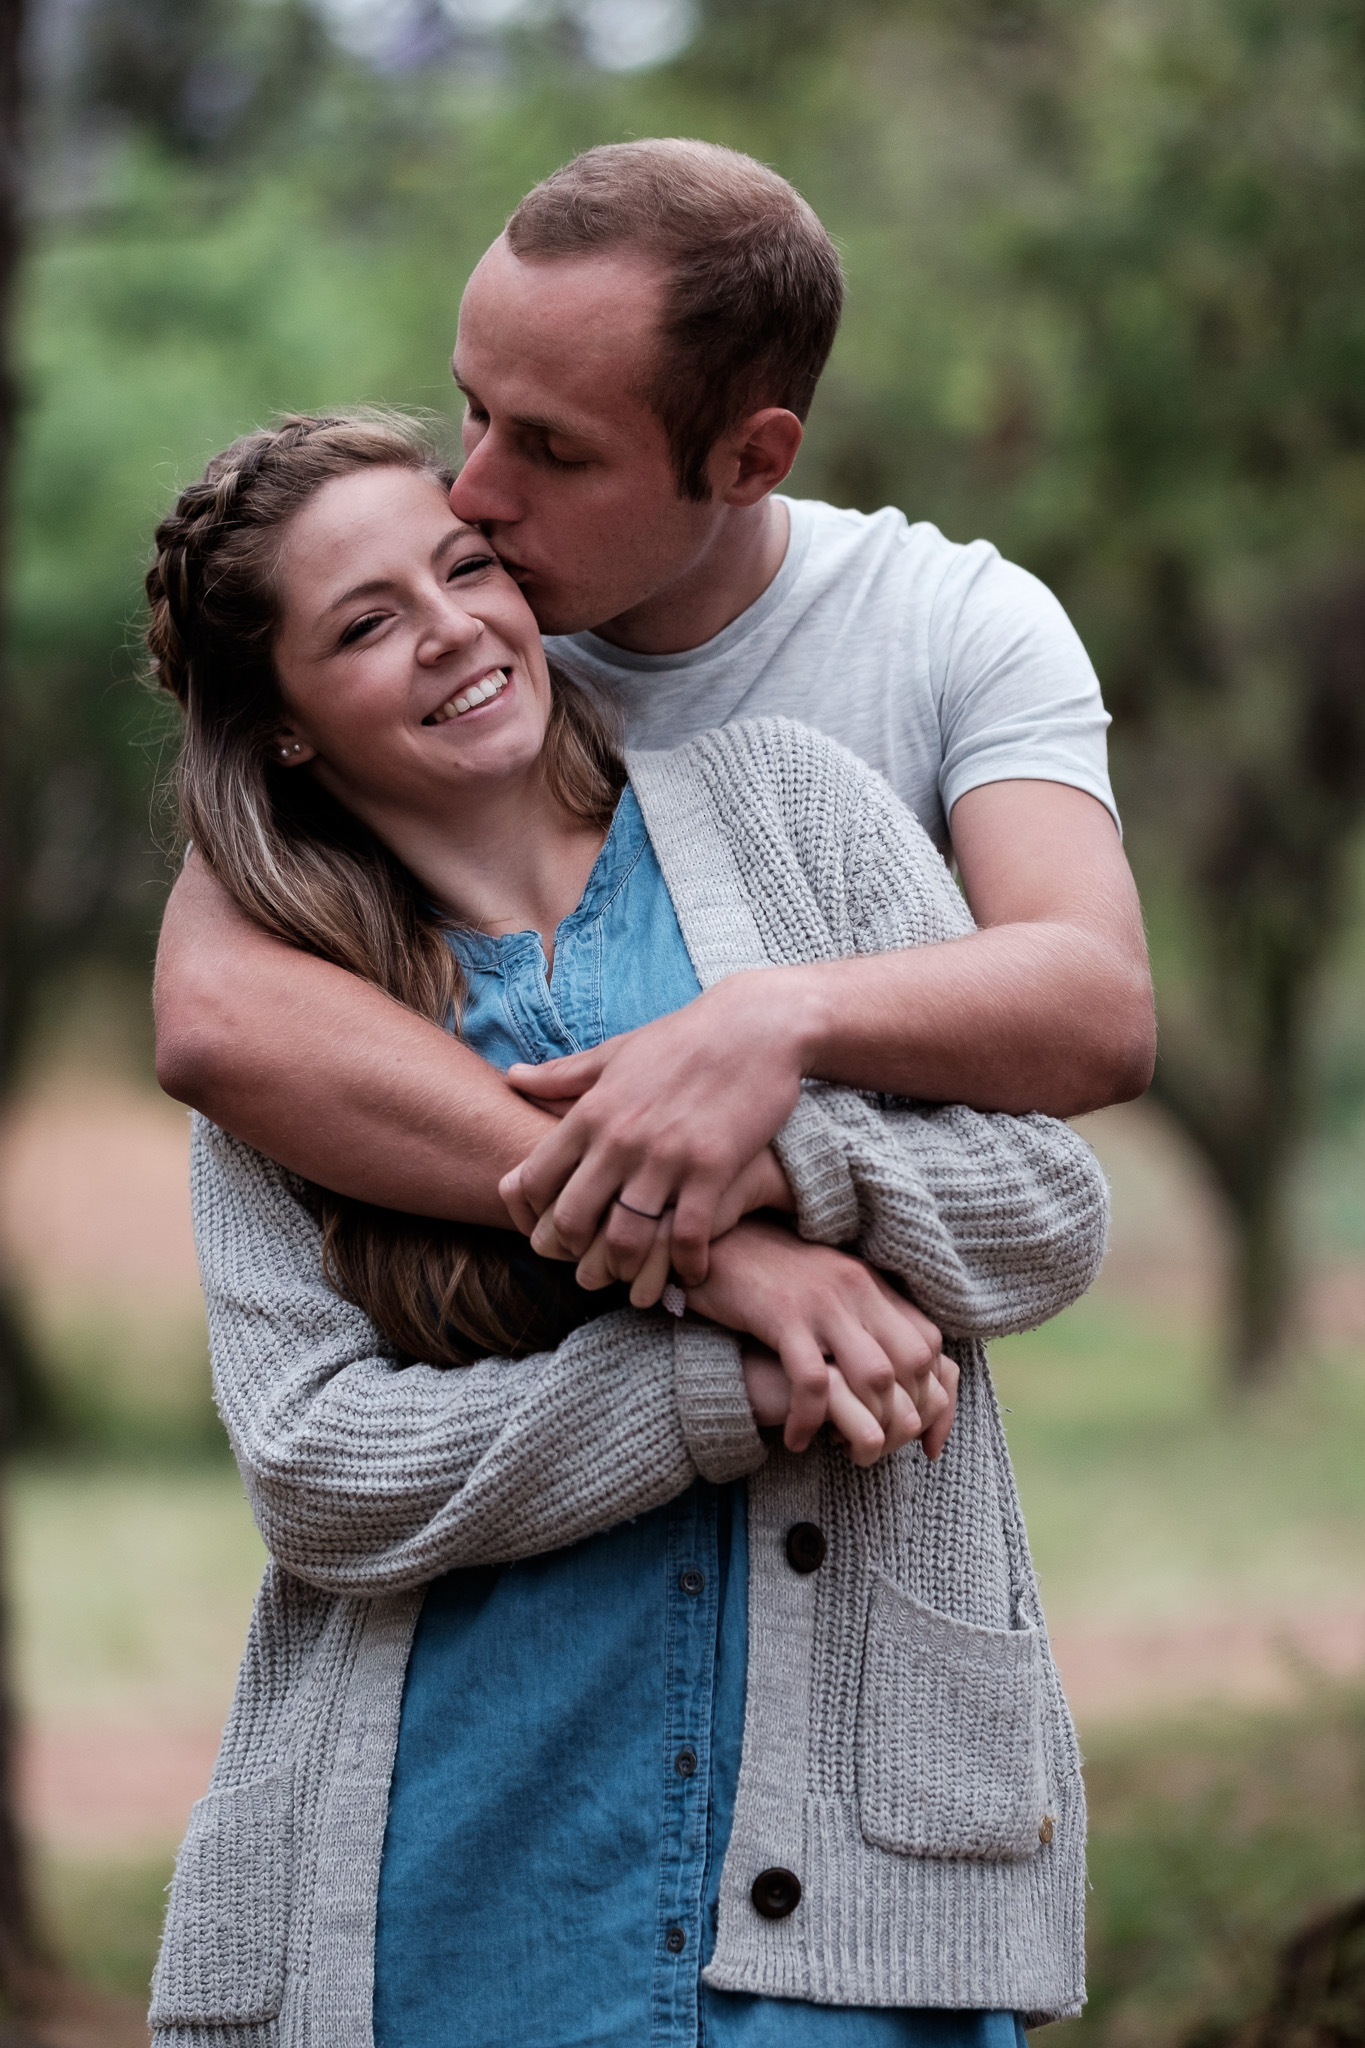 Charique and Stiaan - Couple - Cath Tatham Photography